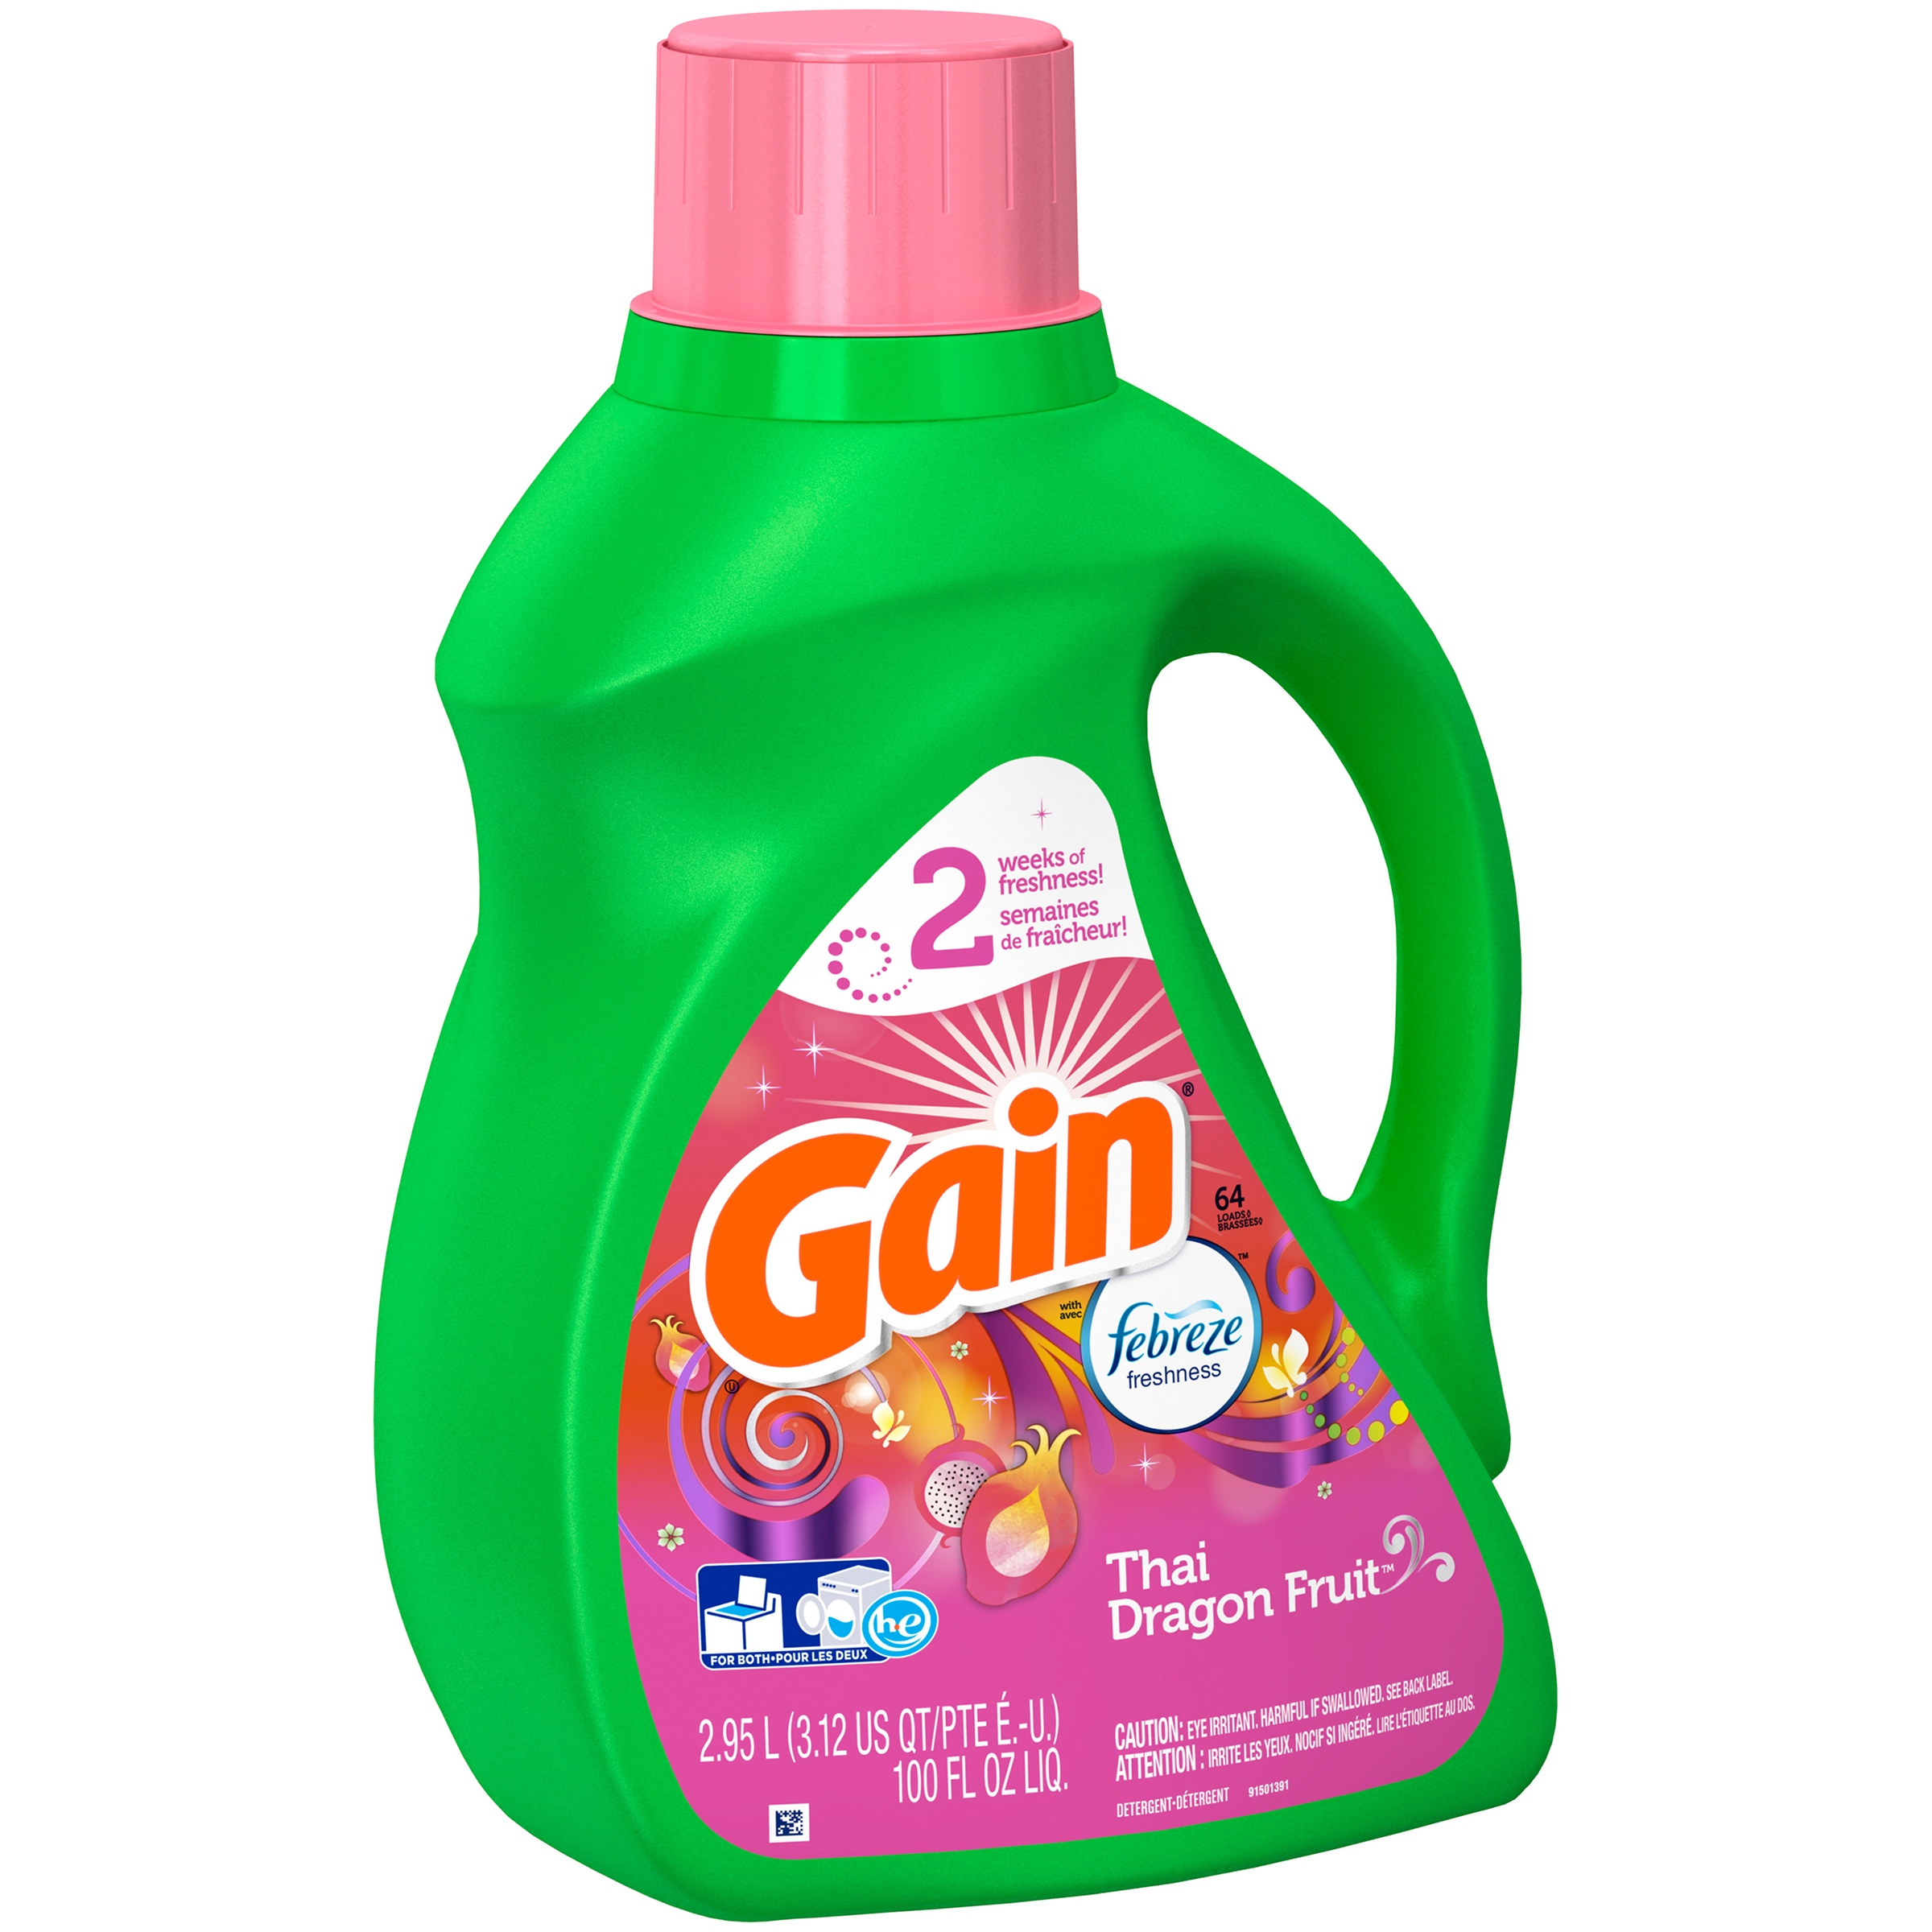 Gain with Febreze Thai Dragon Fruit Liquid Laundry Detergent 100 fl. oz. Plastic Jug